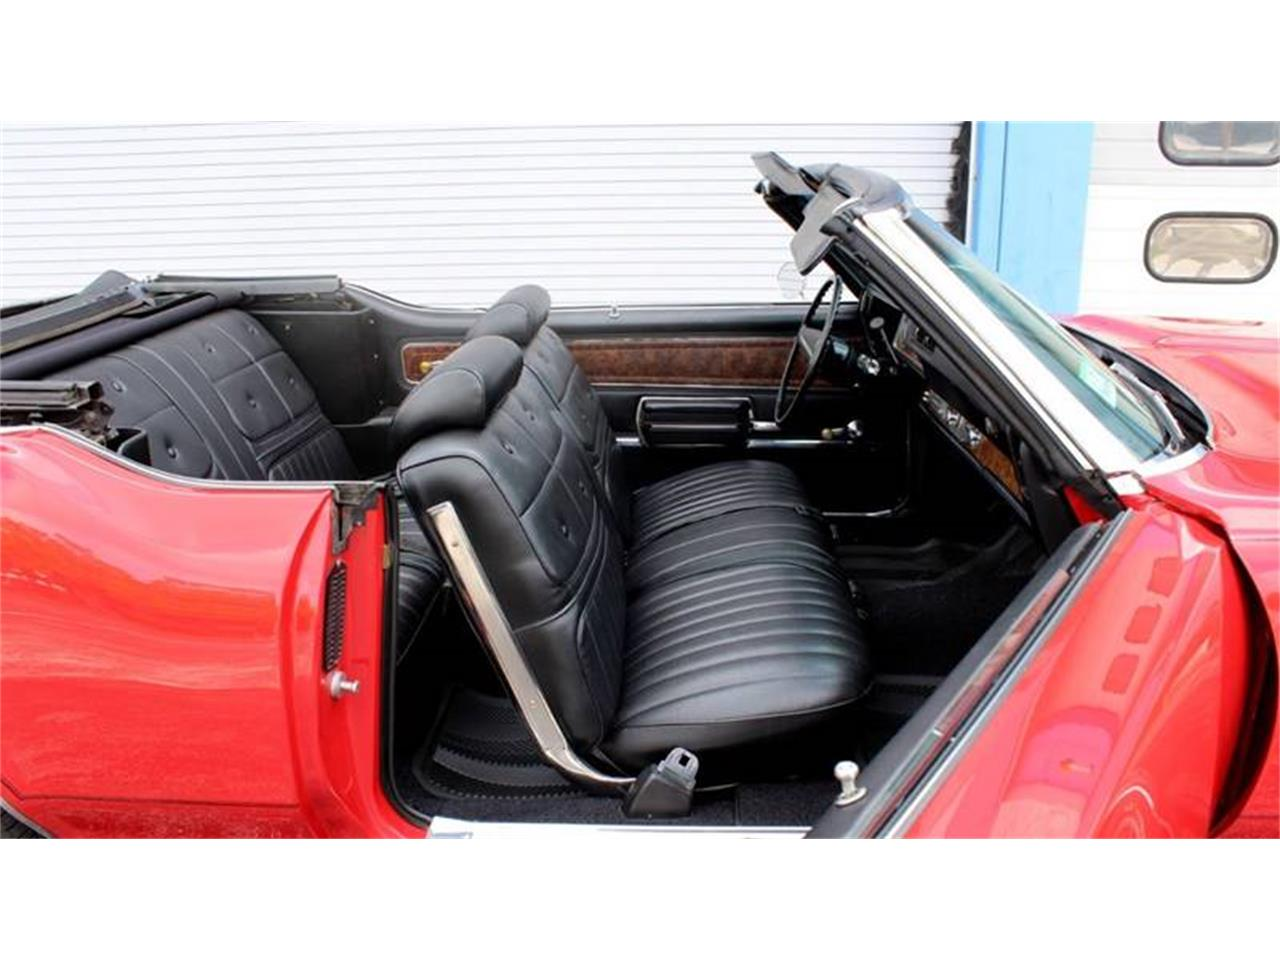 Large Picture of 1970 Oldsmobile Cutlass located in Florida - $32,900.00 Offered by PJ's Auto World - Q478